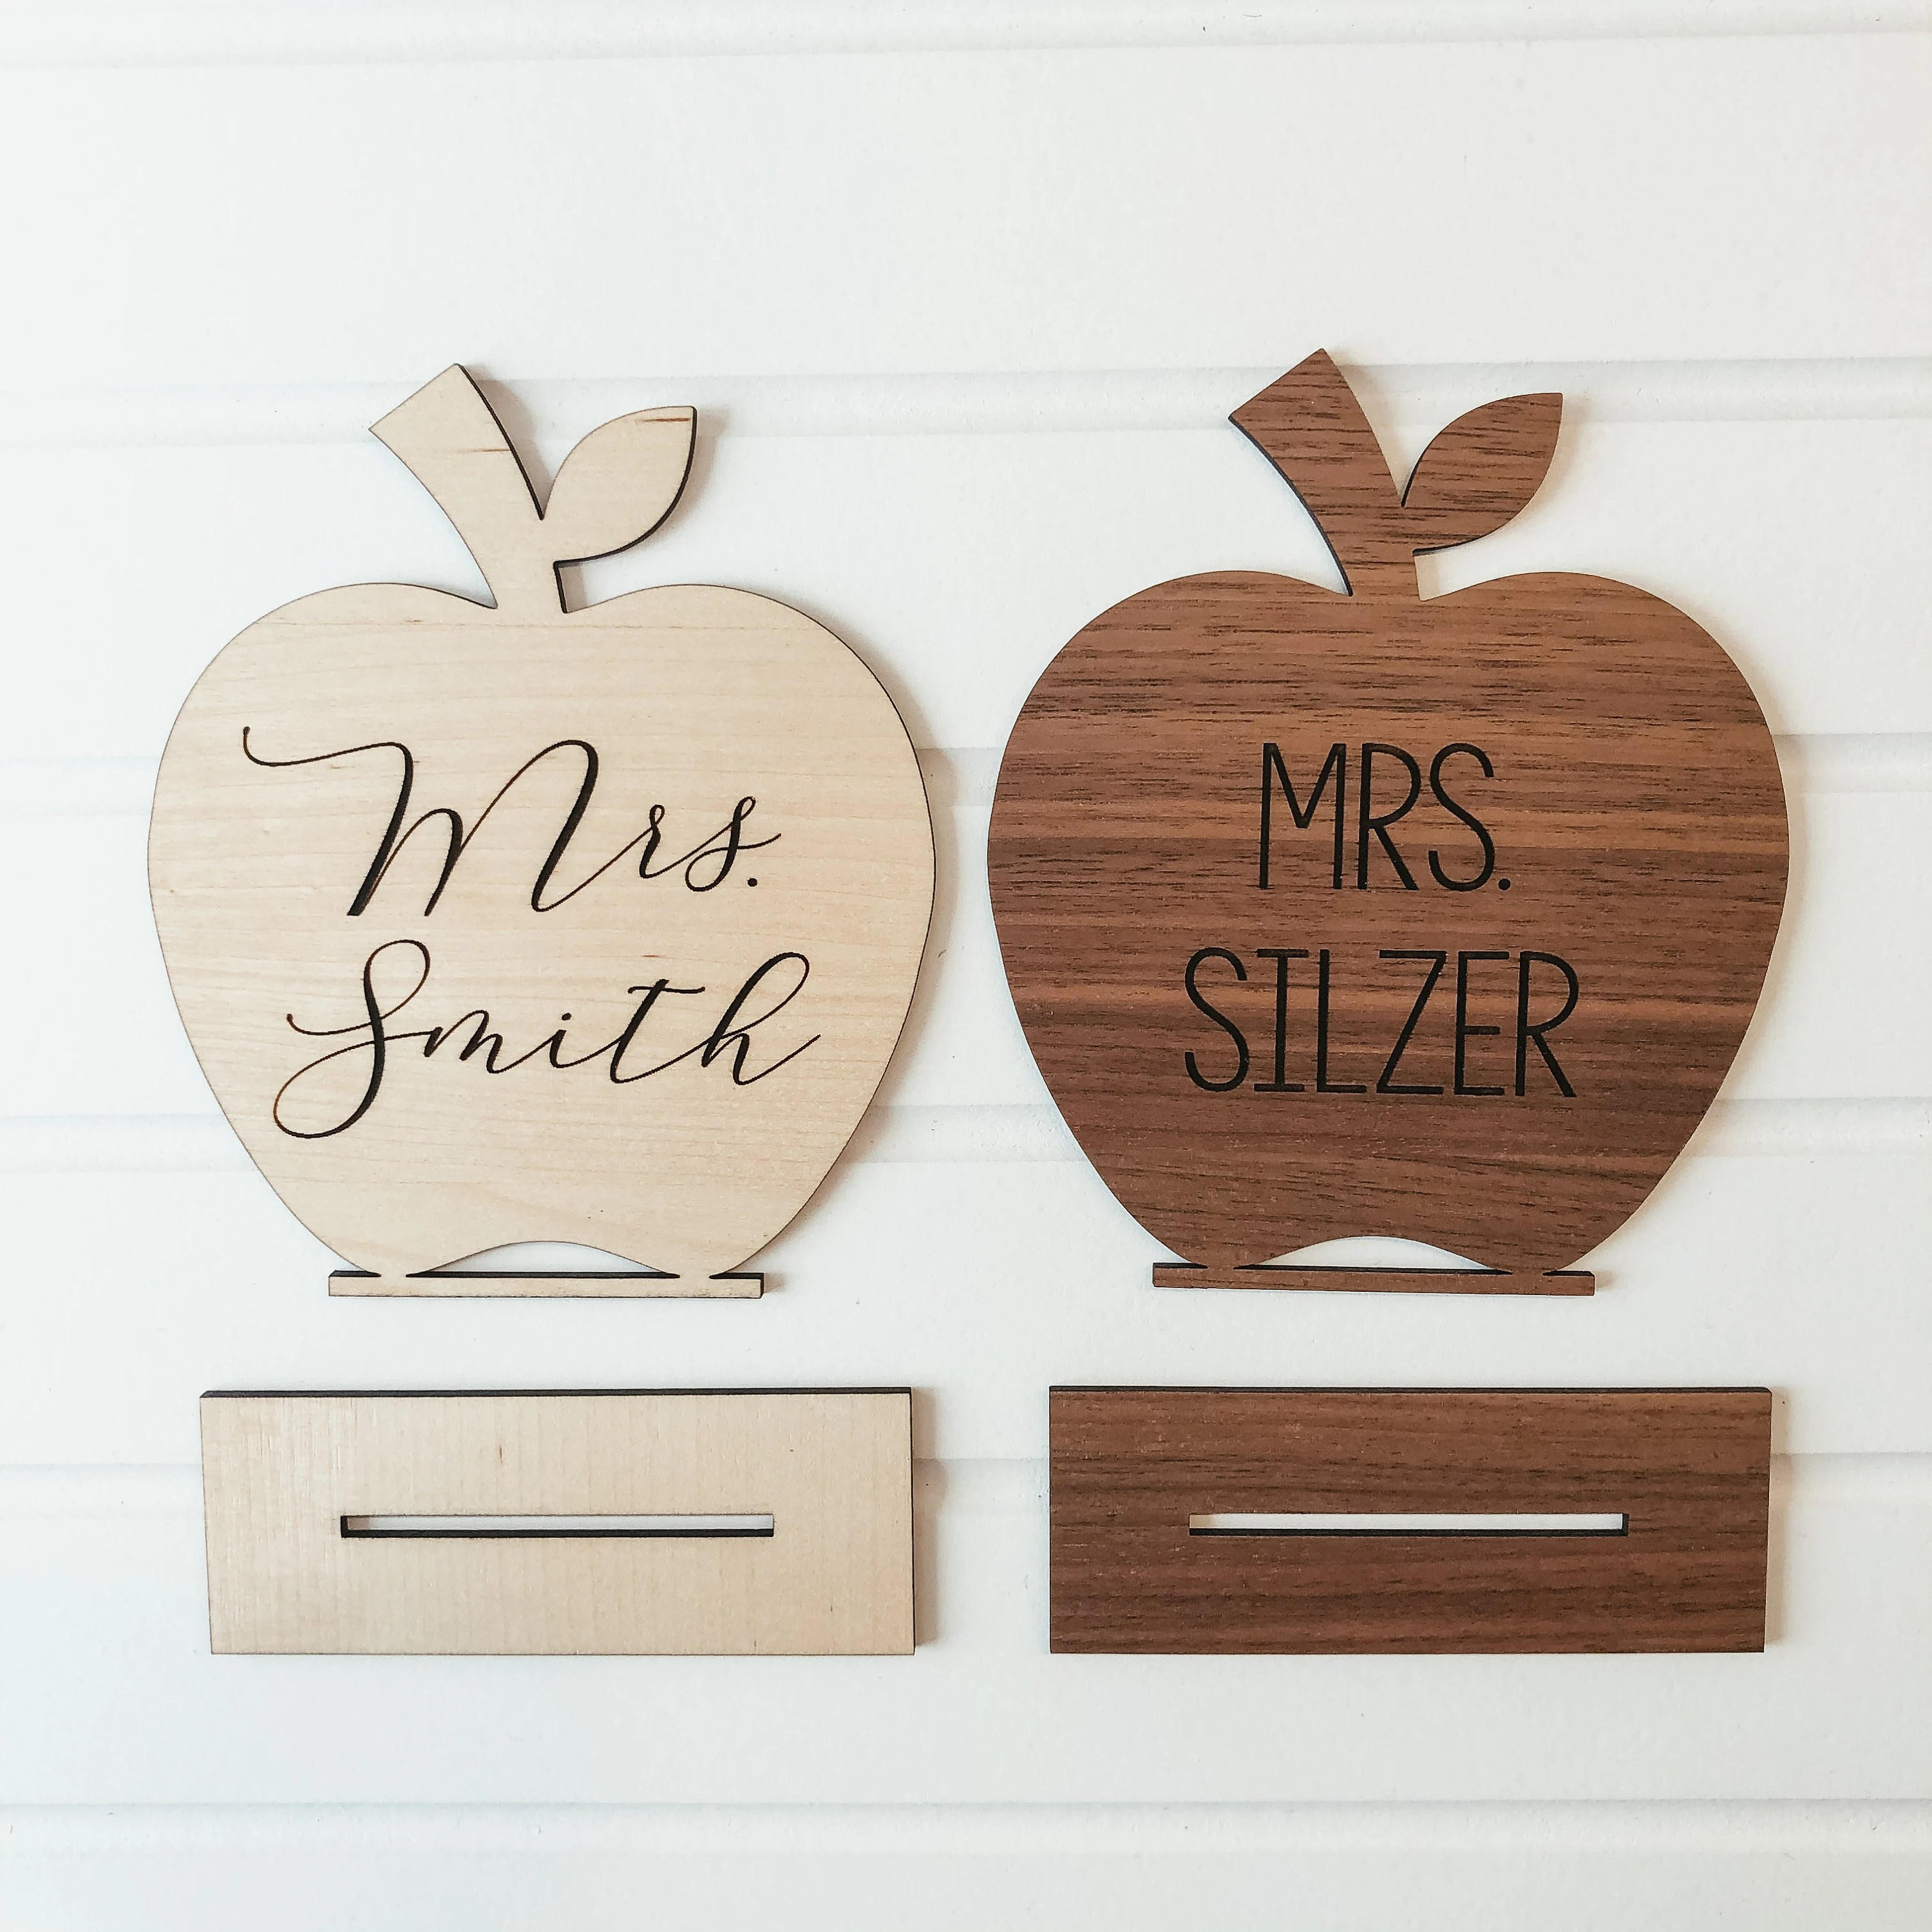 Personalized Desk Name Sign Wooden Apple Teacher Desk Sign image 1